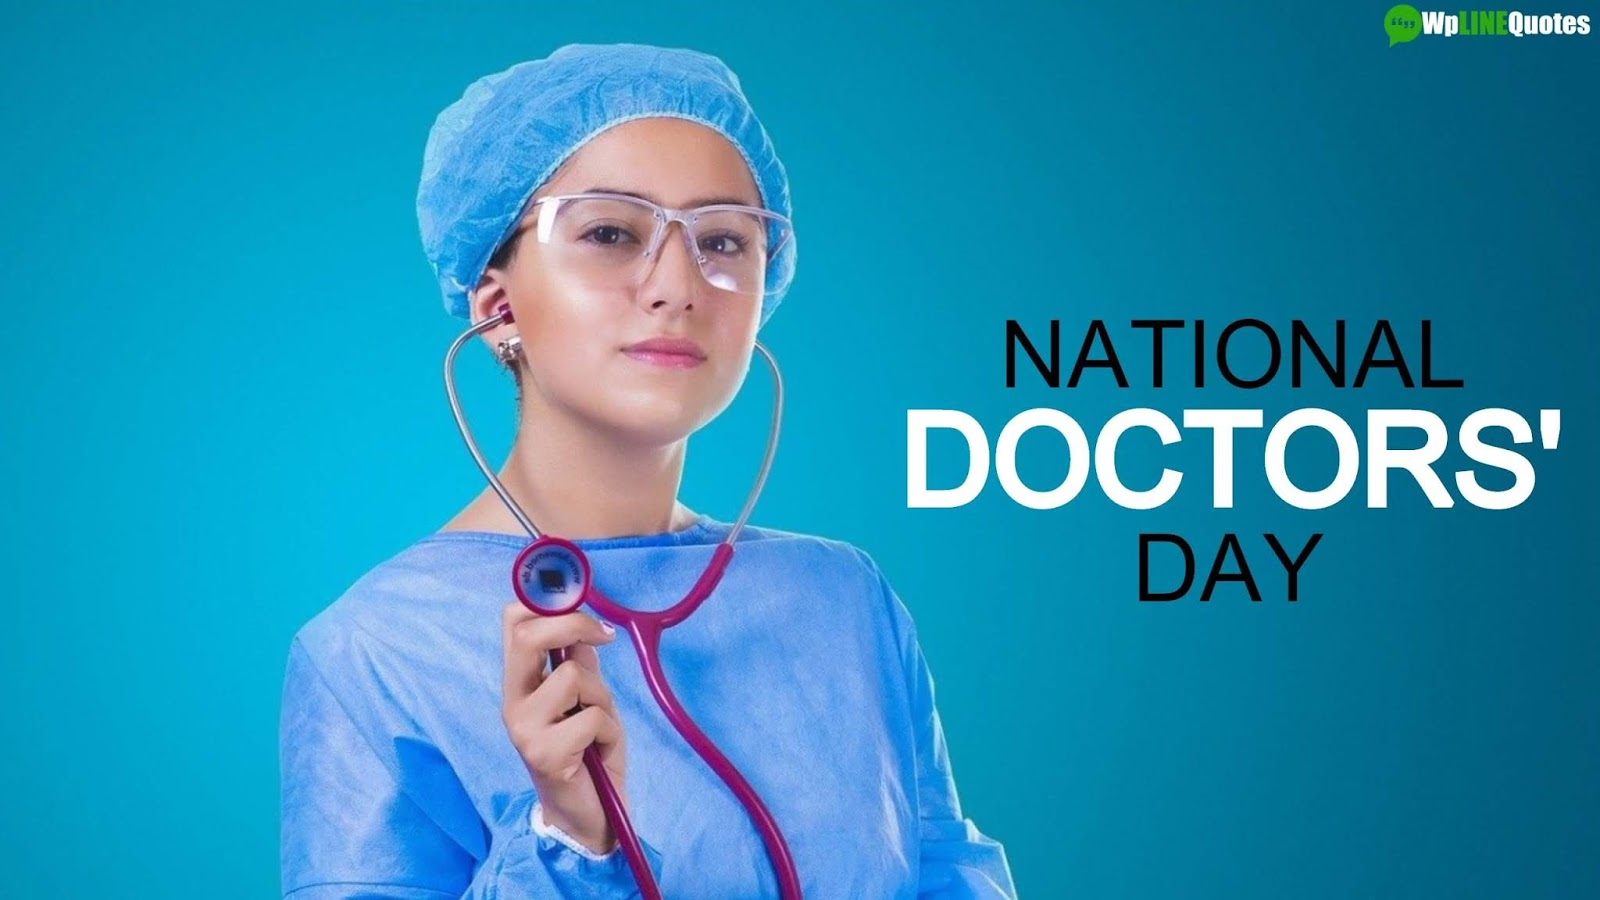 National Doctors' Day Quotes, Wishes, Messages, Images, Poster, Ideas